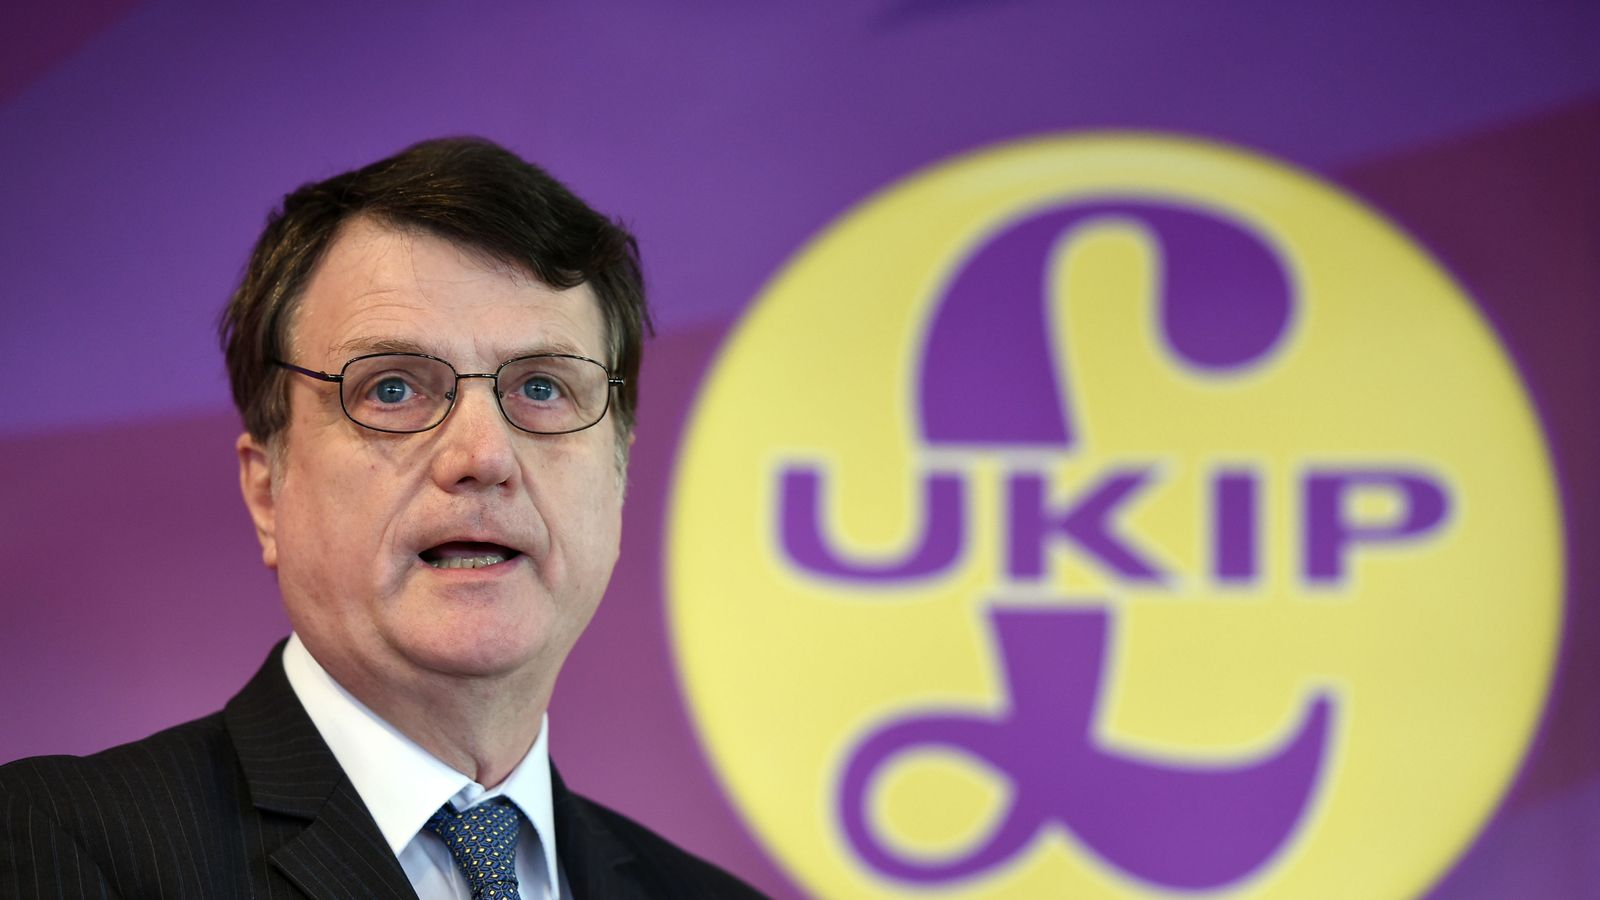 UKIP admit 'similarities' with Donald Trump stance over new Muslim migration policy